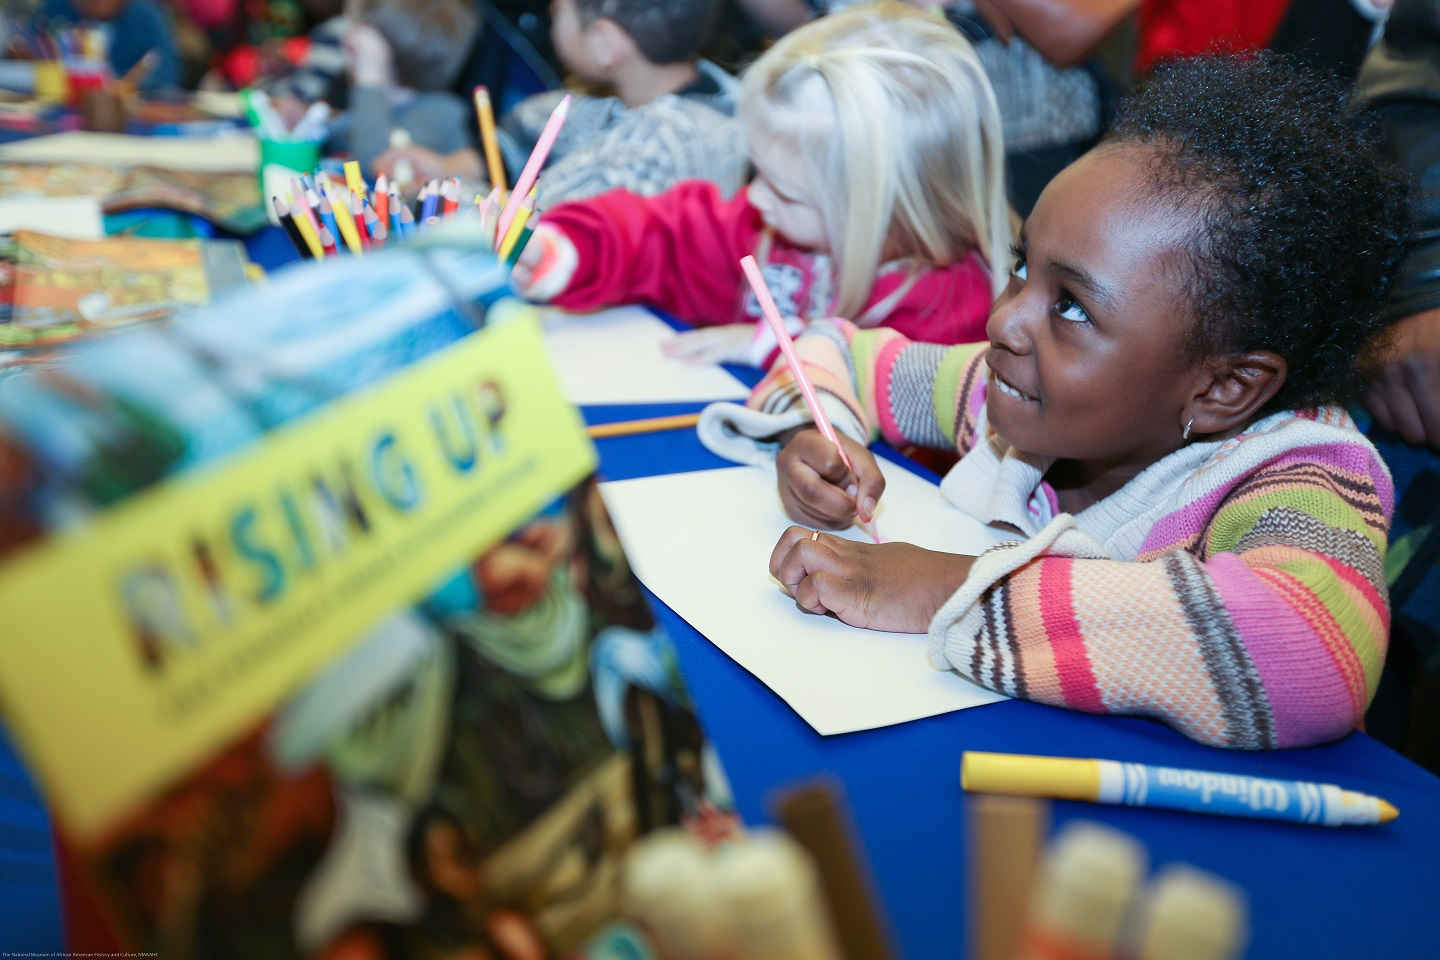 A group of young children sit at a long table coloring and writing. One youngster is smiling up at someone off-camera.